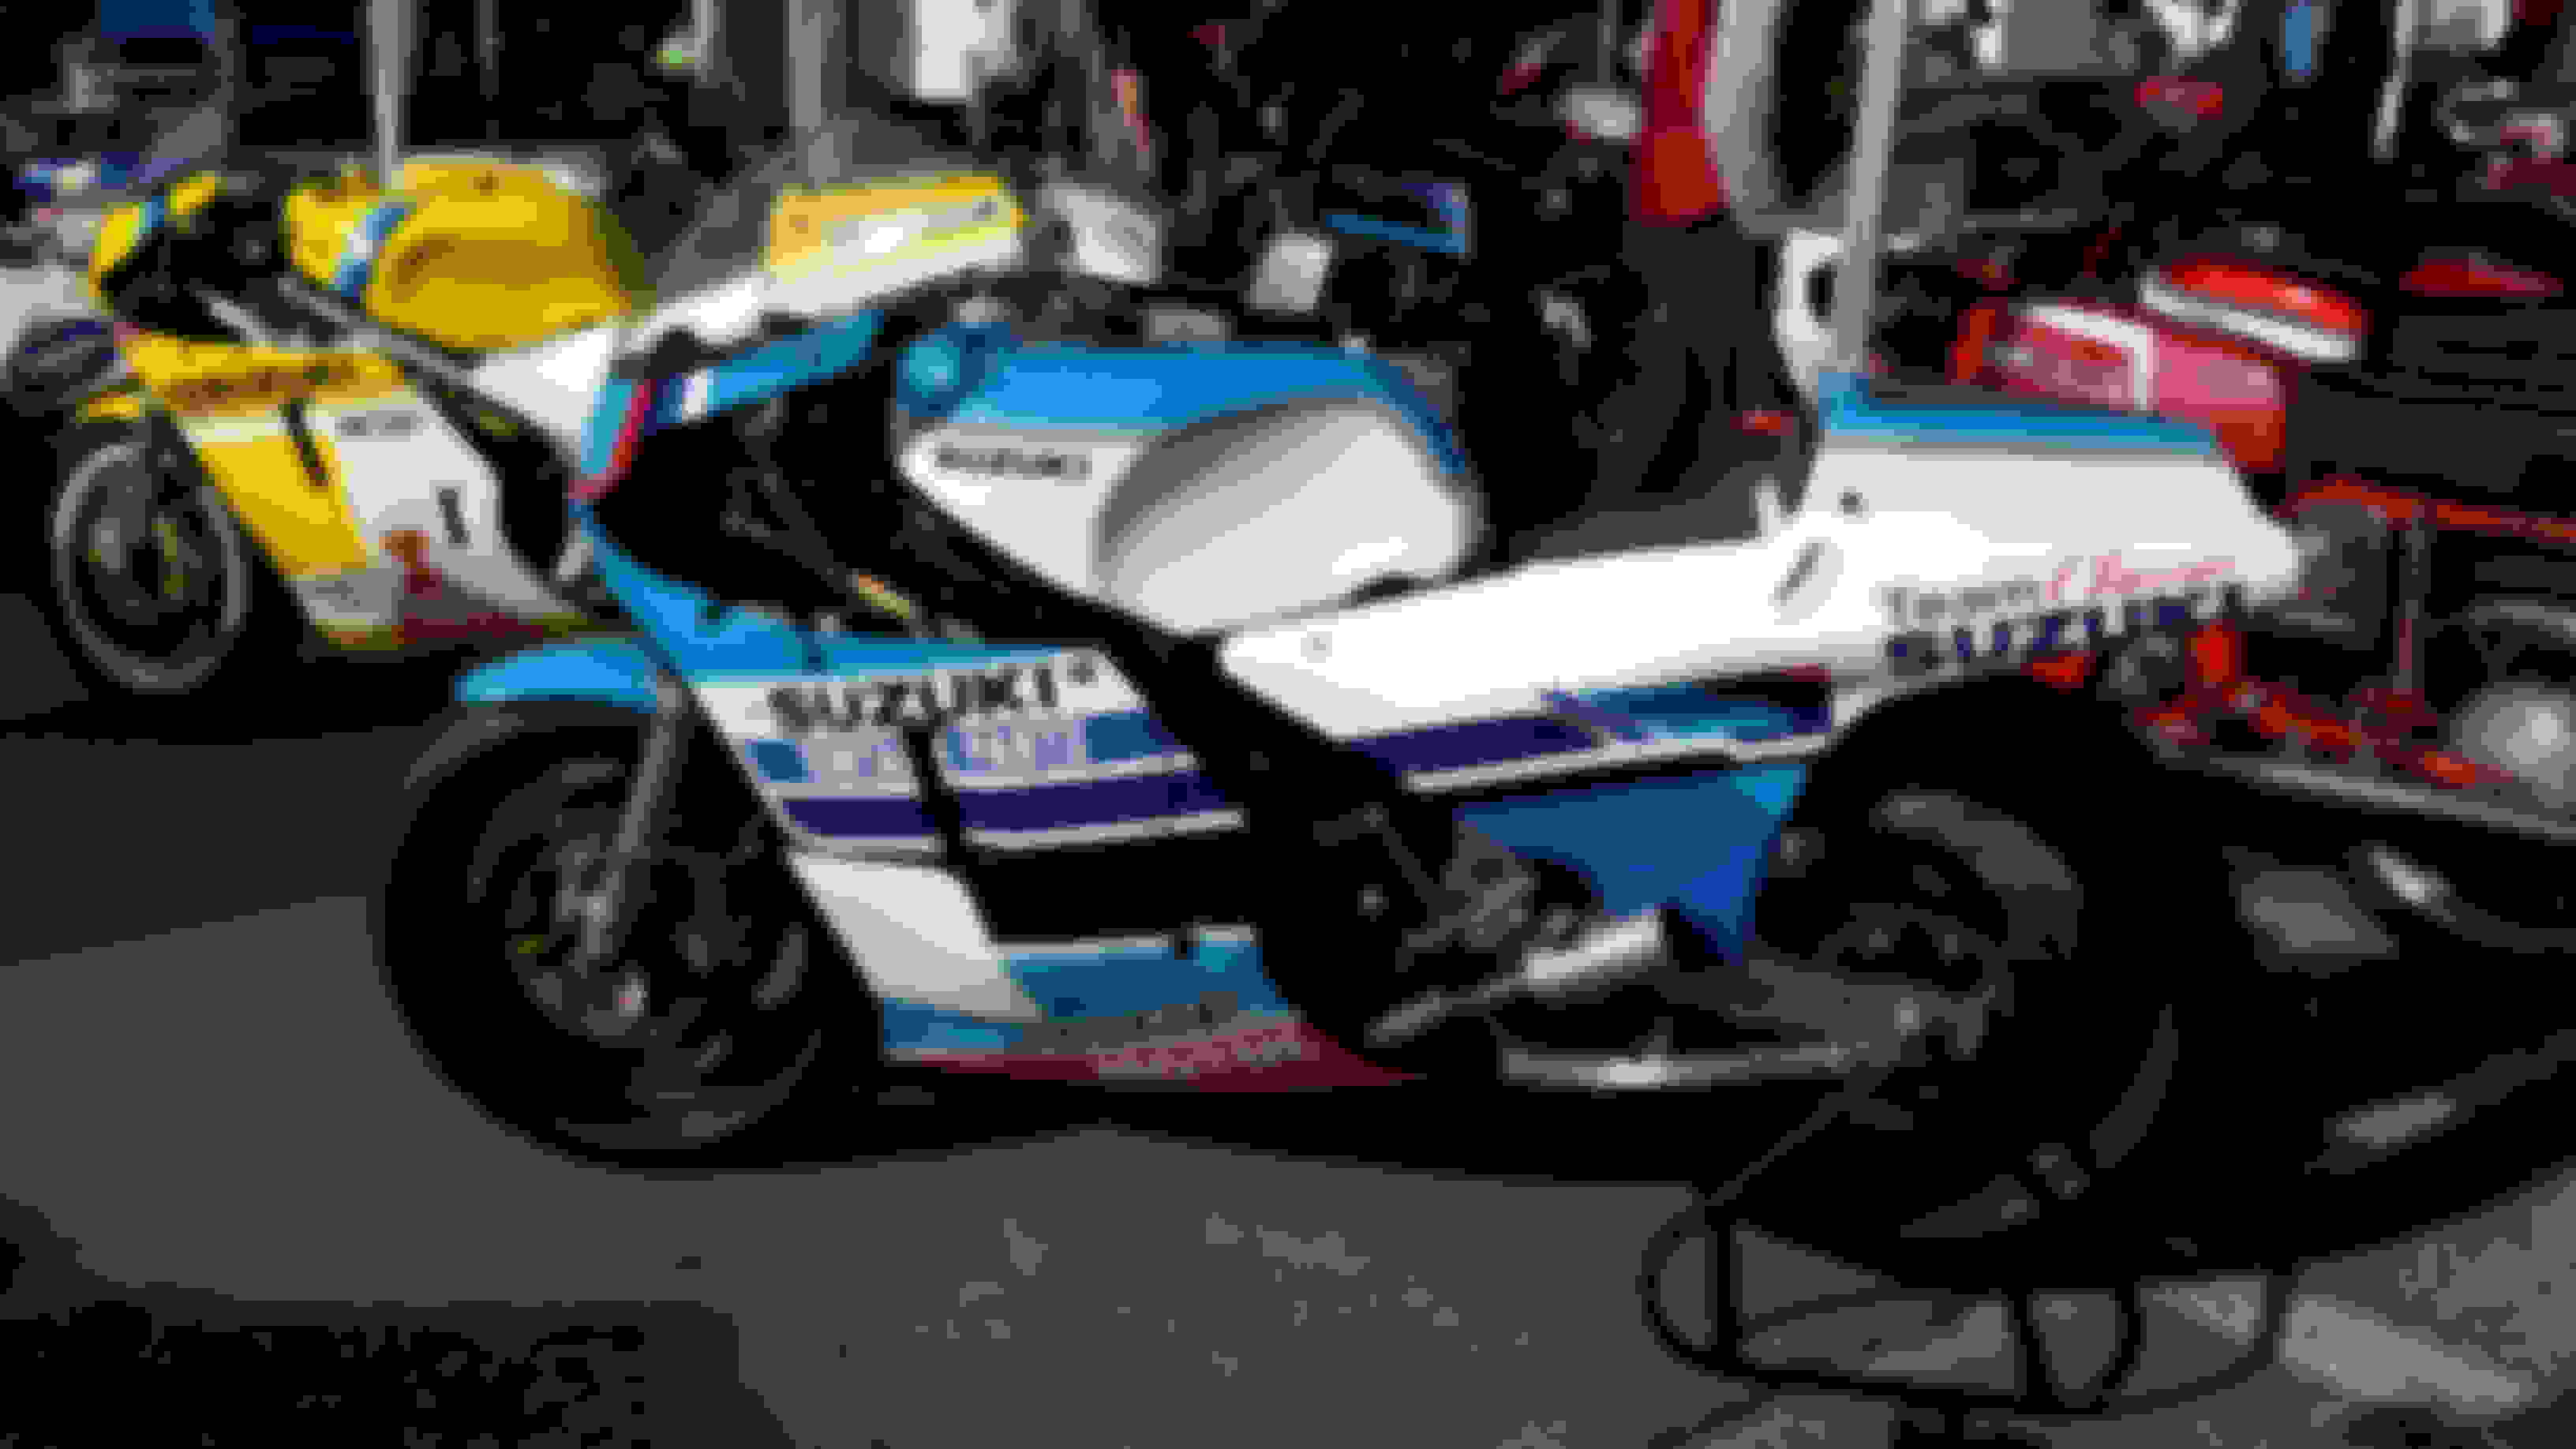 Grand Prix Bike Display - Suzuki RG500